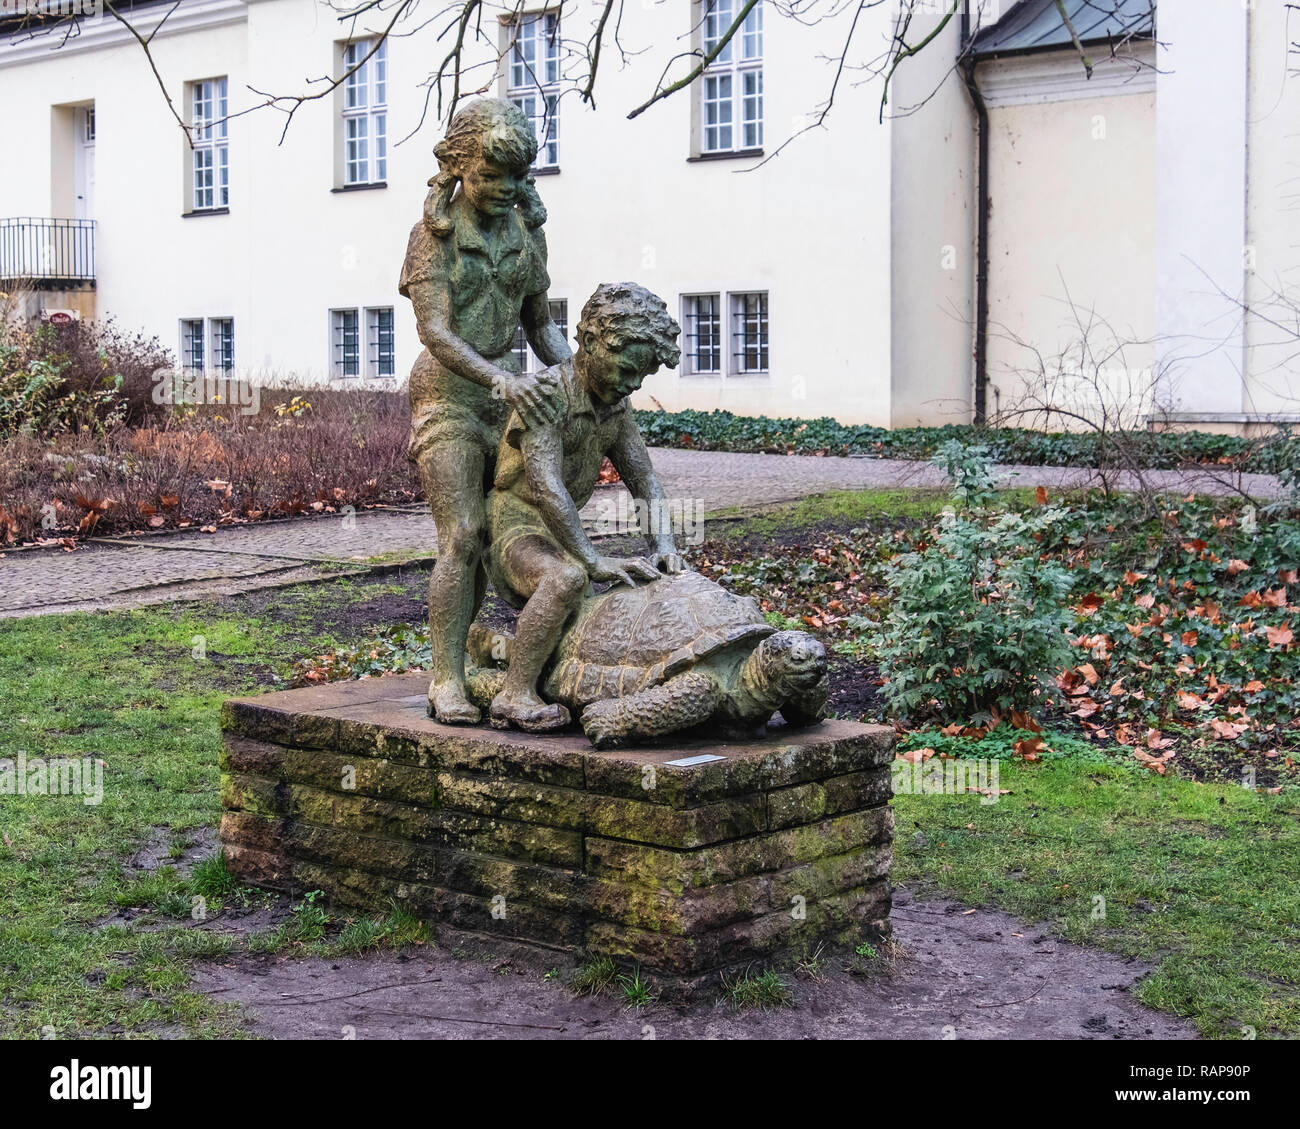 Berlin-Köpenick Sculpture of Children with Tortoise by sculptor Waler Lerche in Schloss Palace park located on an island in the Dahme river. - Stock Image